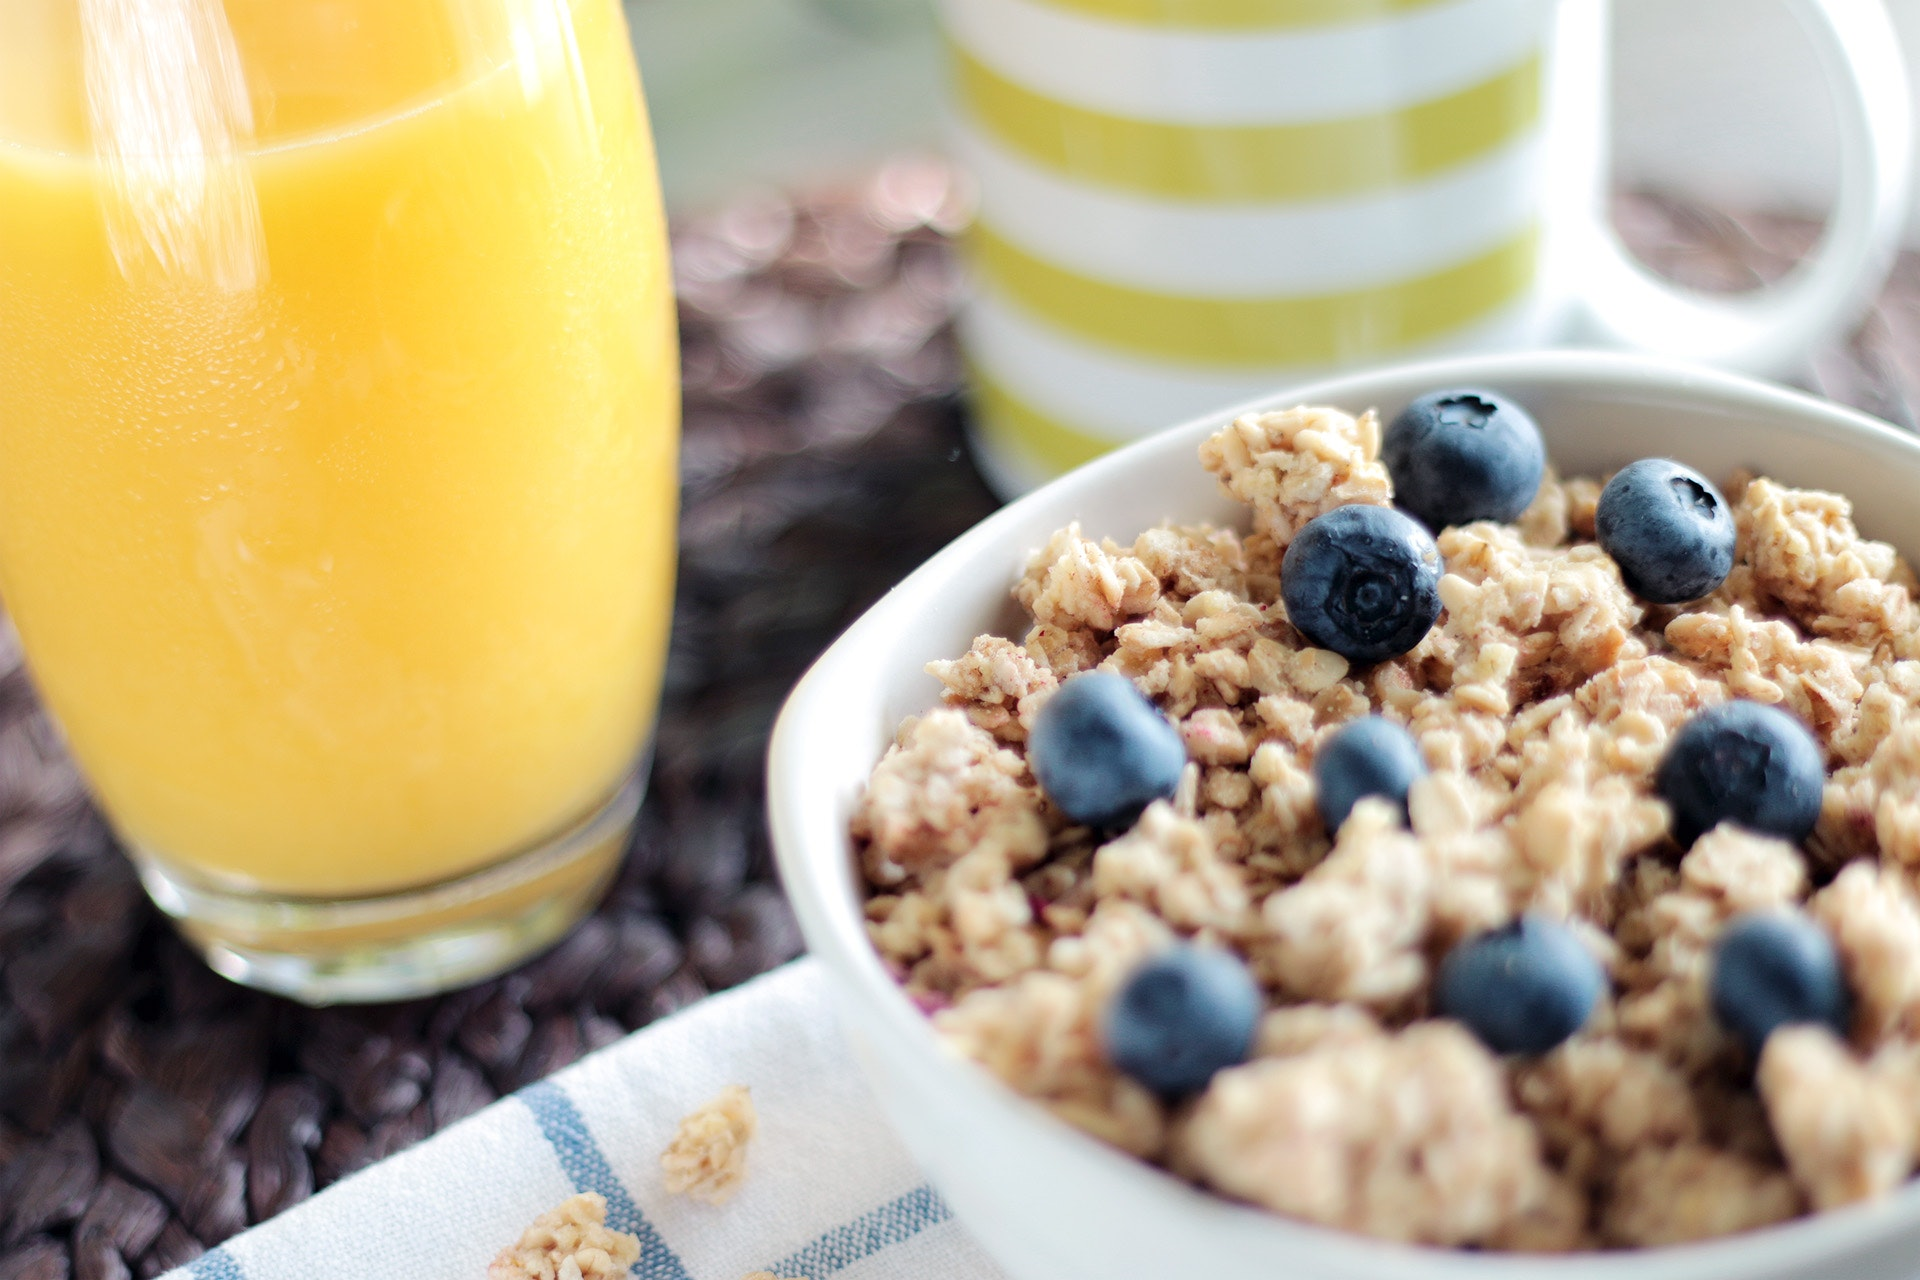 amazing photos pexels. Cereal clipart morning breakfast